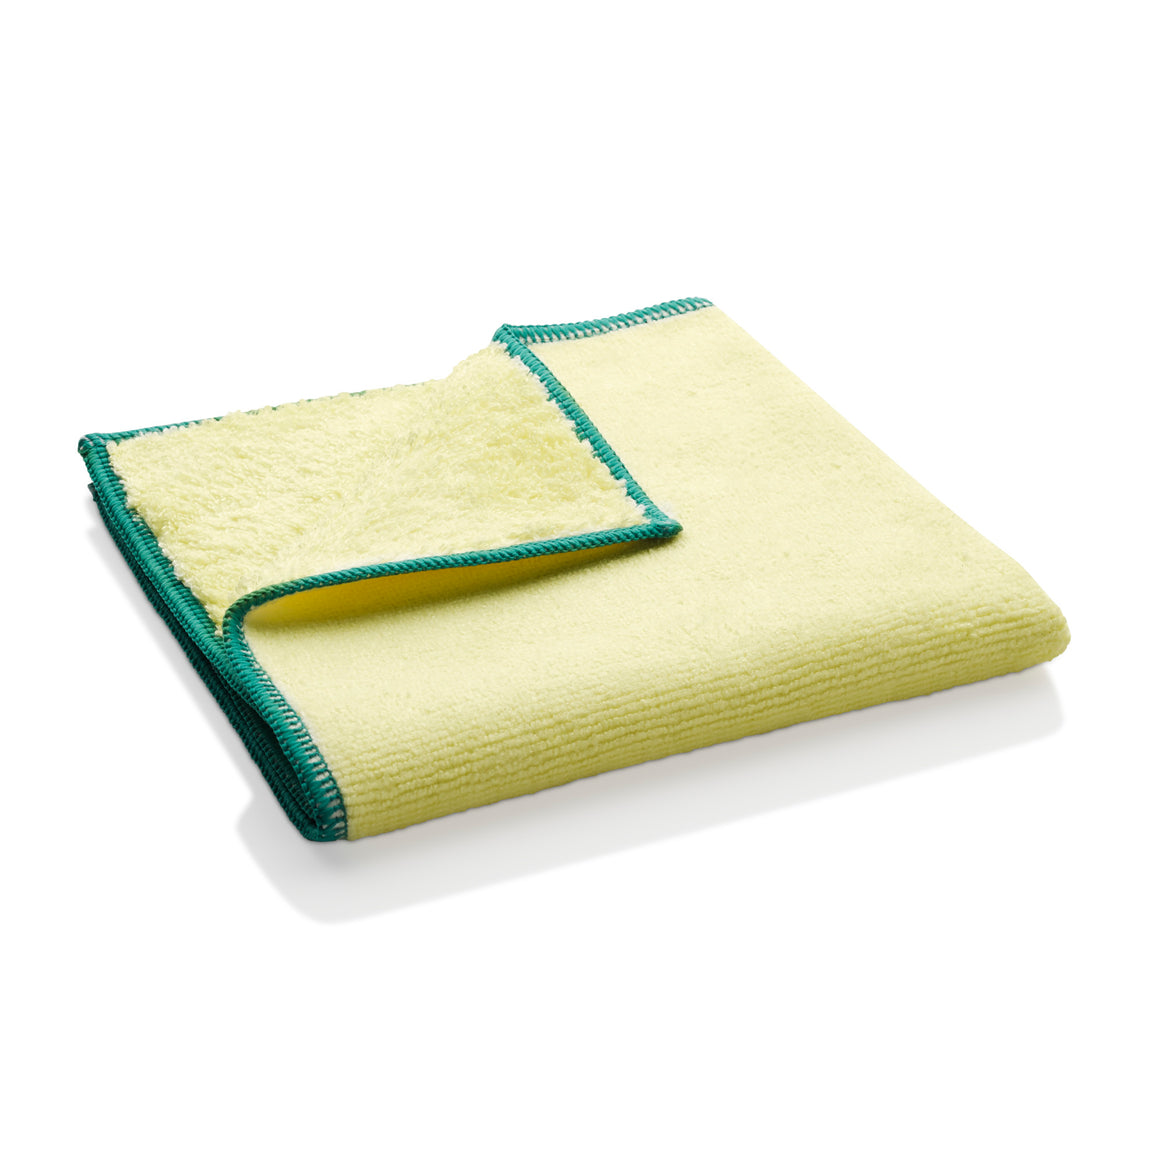 High Performance Dusting Cloth - Precision-Engineered Microfiber Attracts and Holds Dust